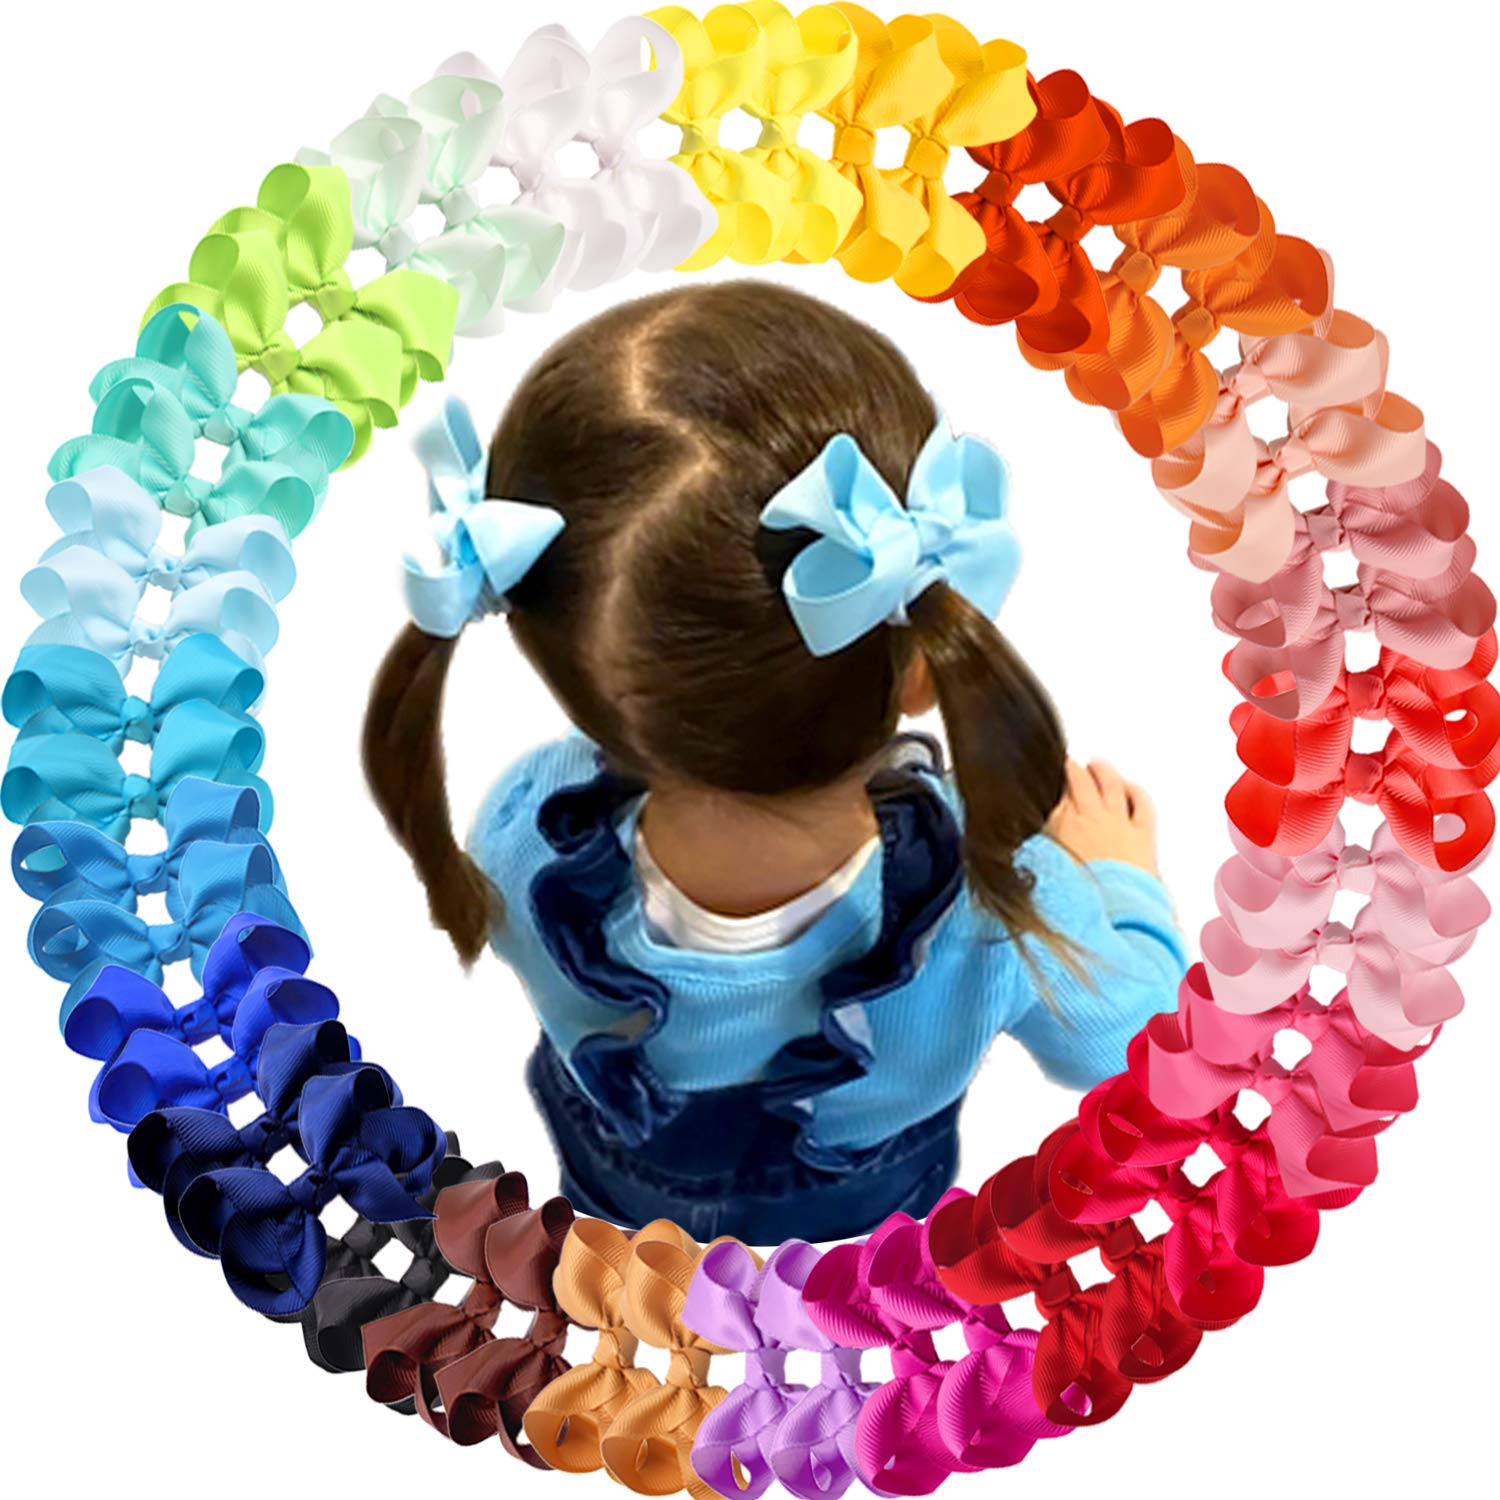 JOYOYO 50 Pieces Baby Girls Hair Bows Clips Pigtail Bows Hair Barrettes Accessory for Babies Infant Toddlers Kids 25 Colors in Pairs